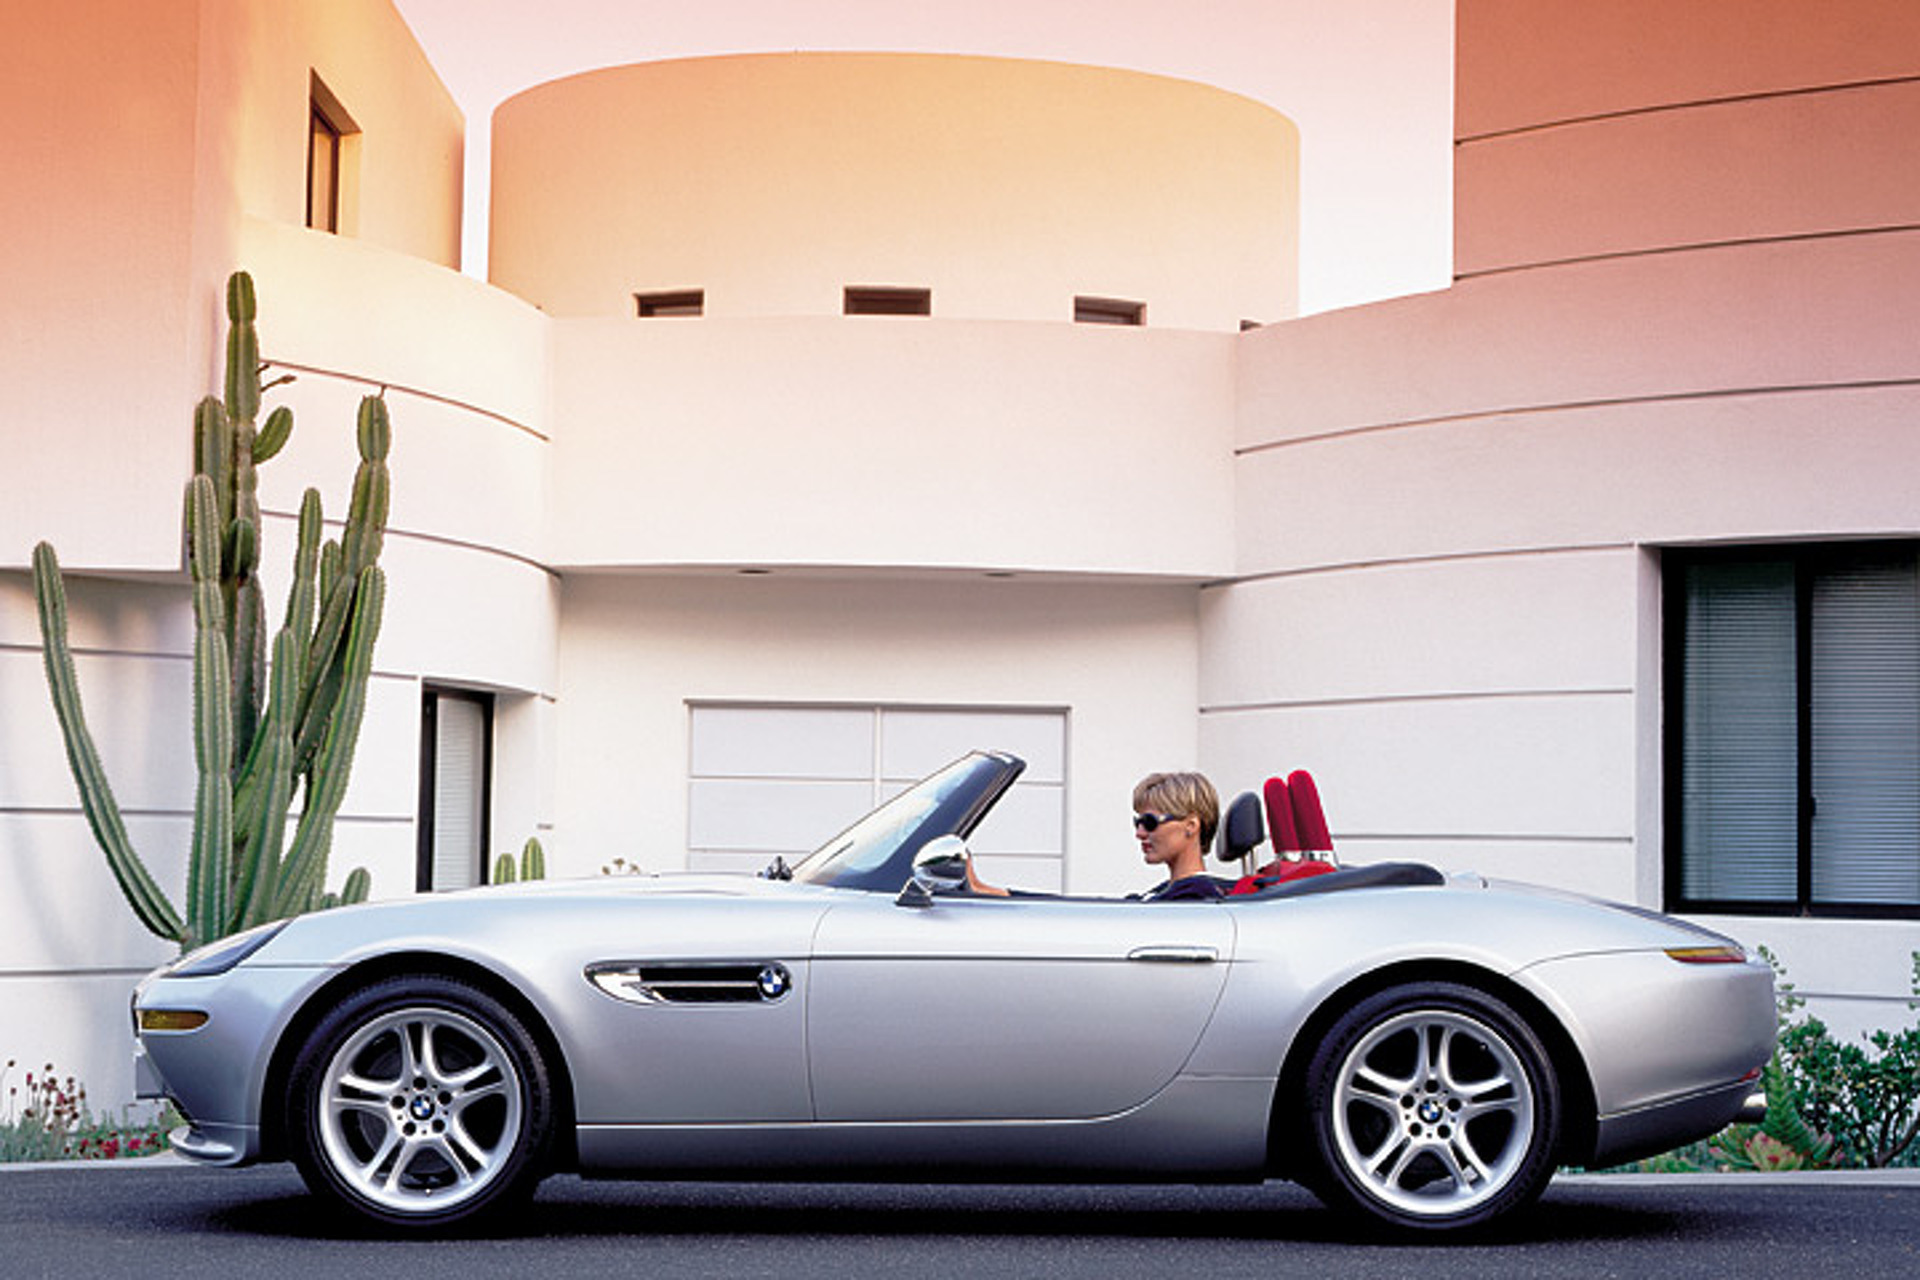 Investing in an Automobile? The BMW Z8's Stock is Rising